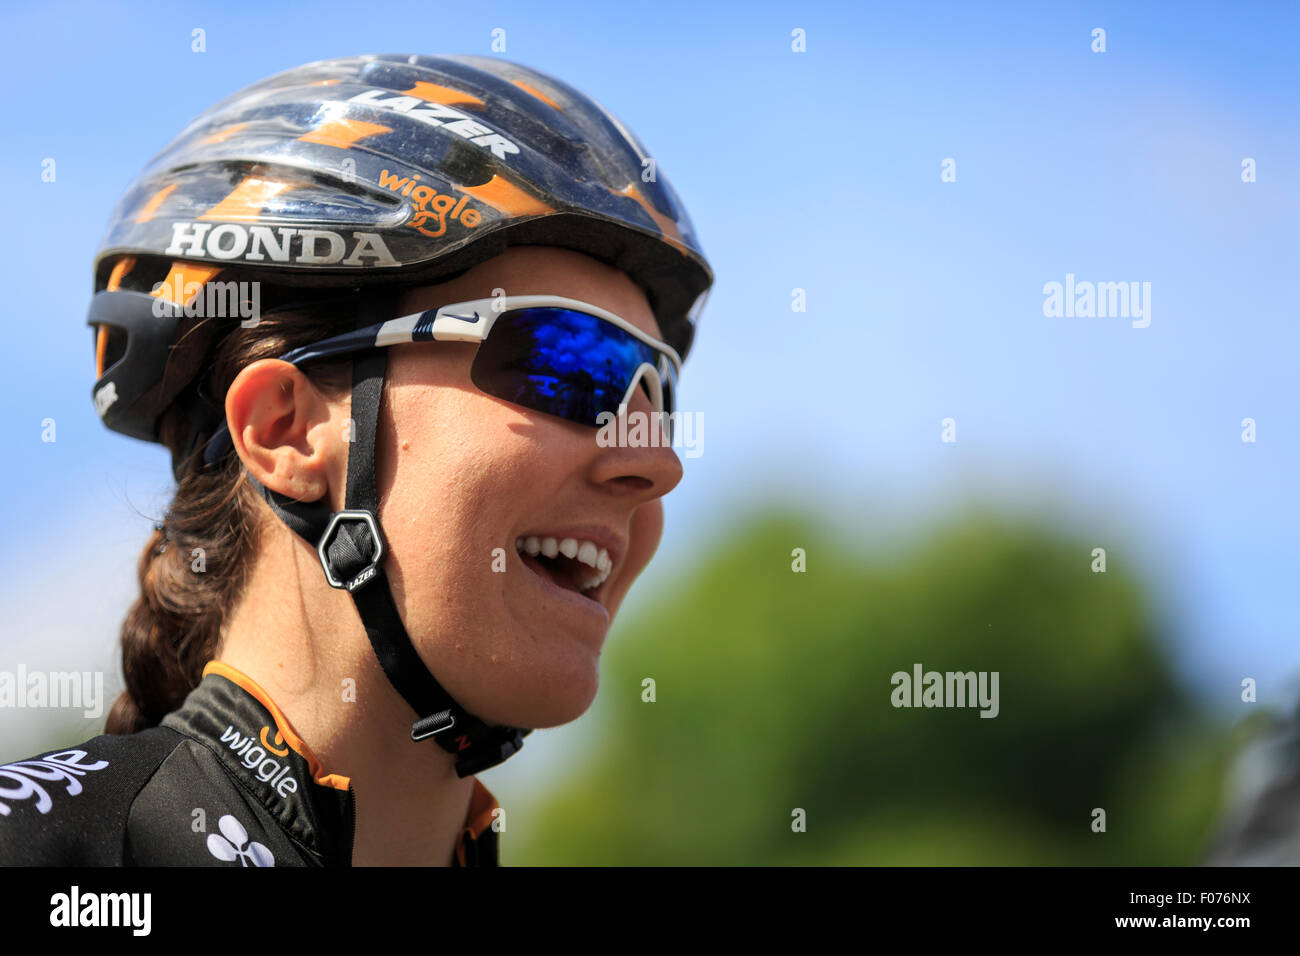 Dani King (Wiggle Honda) laughing before the start of the final stage of the Aviva Women's Tour 2015, Marlow Stock Photo